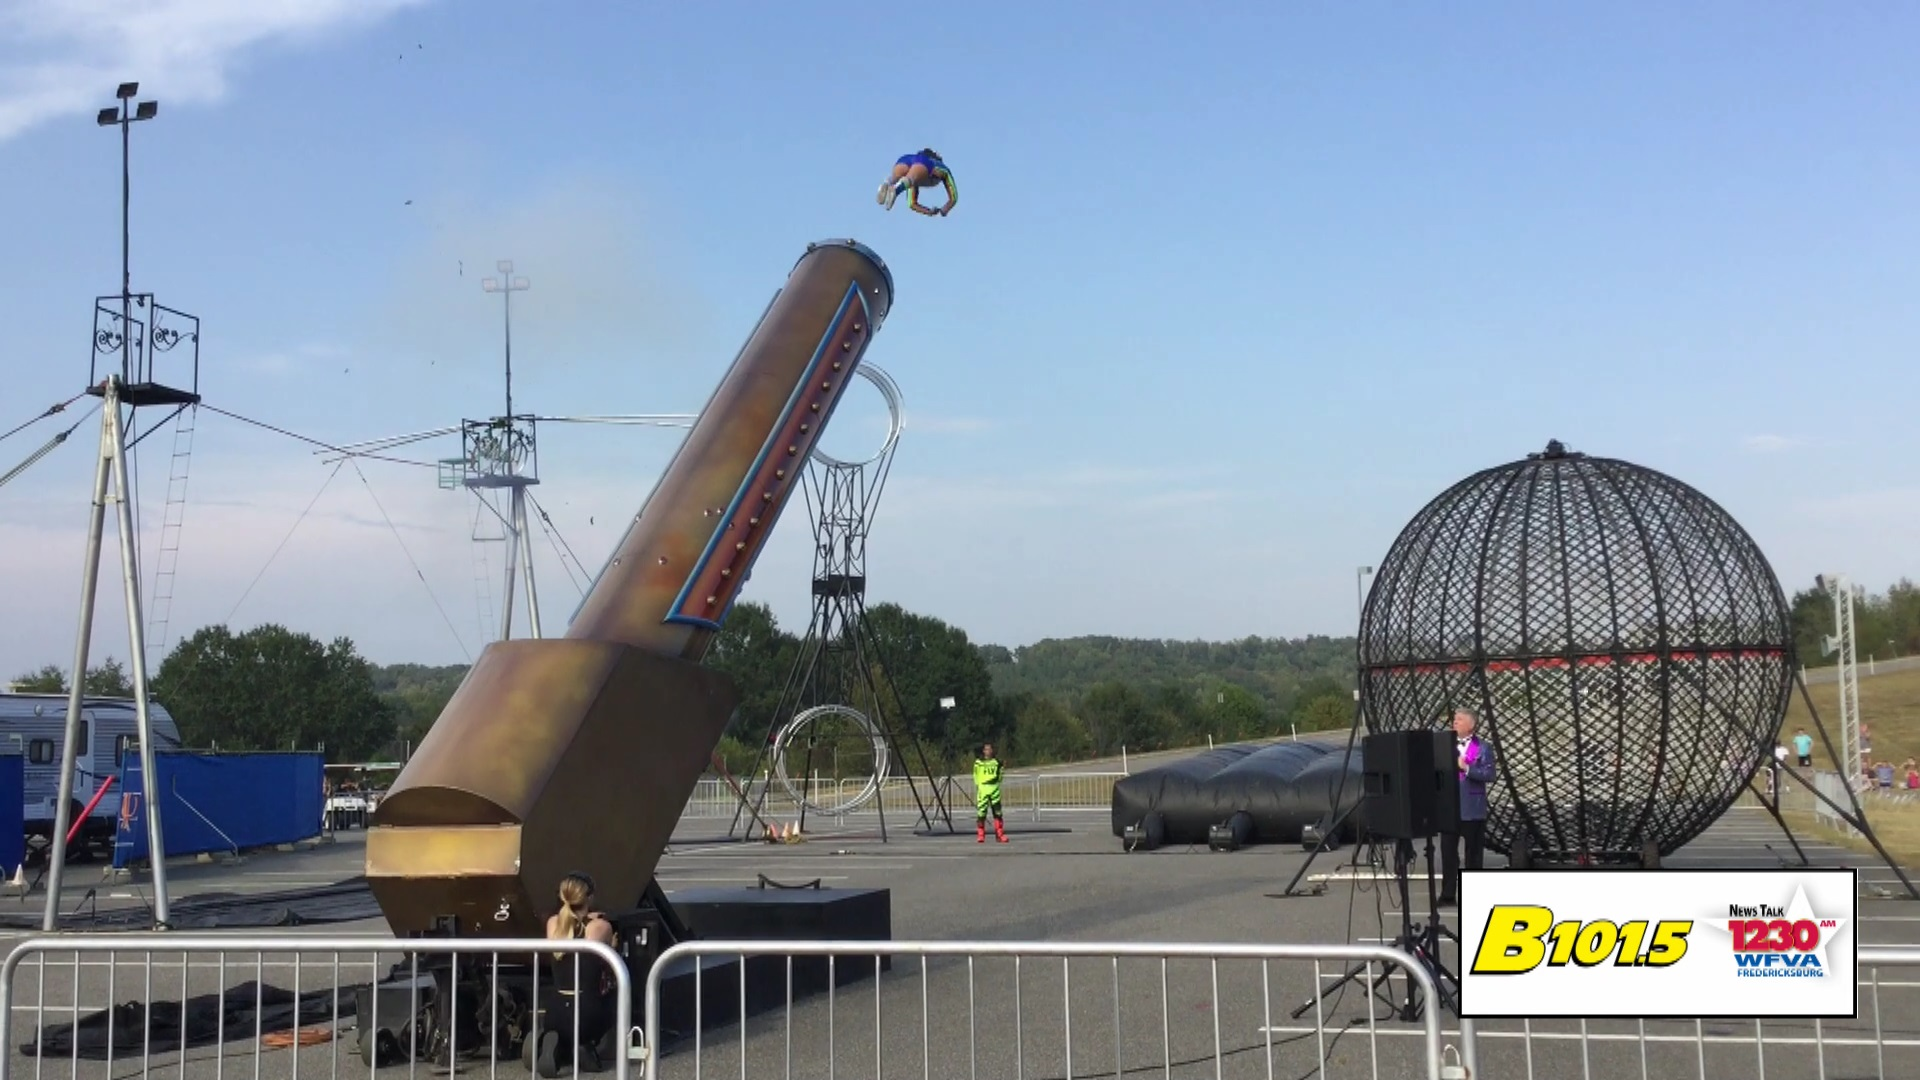 Thrills at the State Fair of Virginia